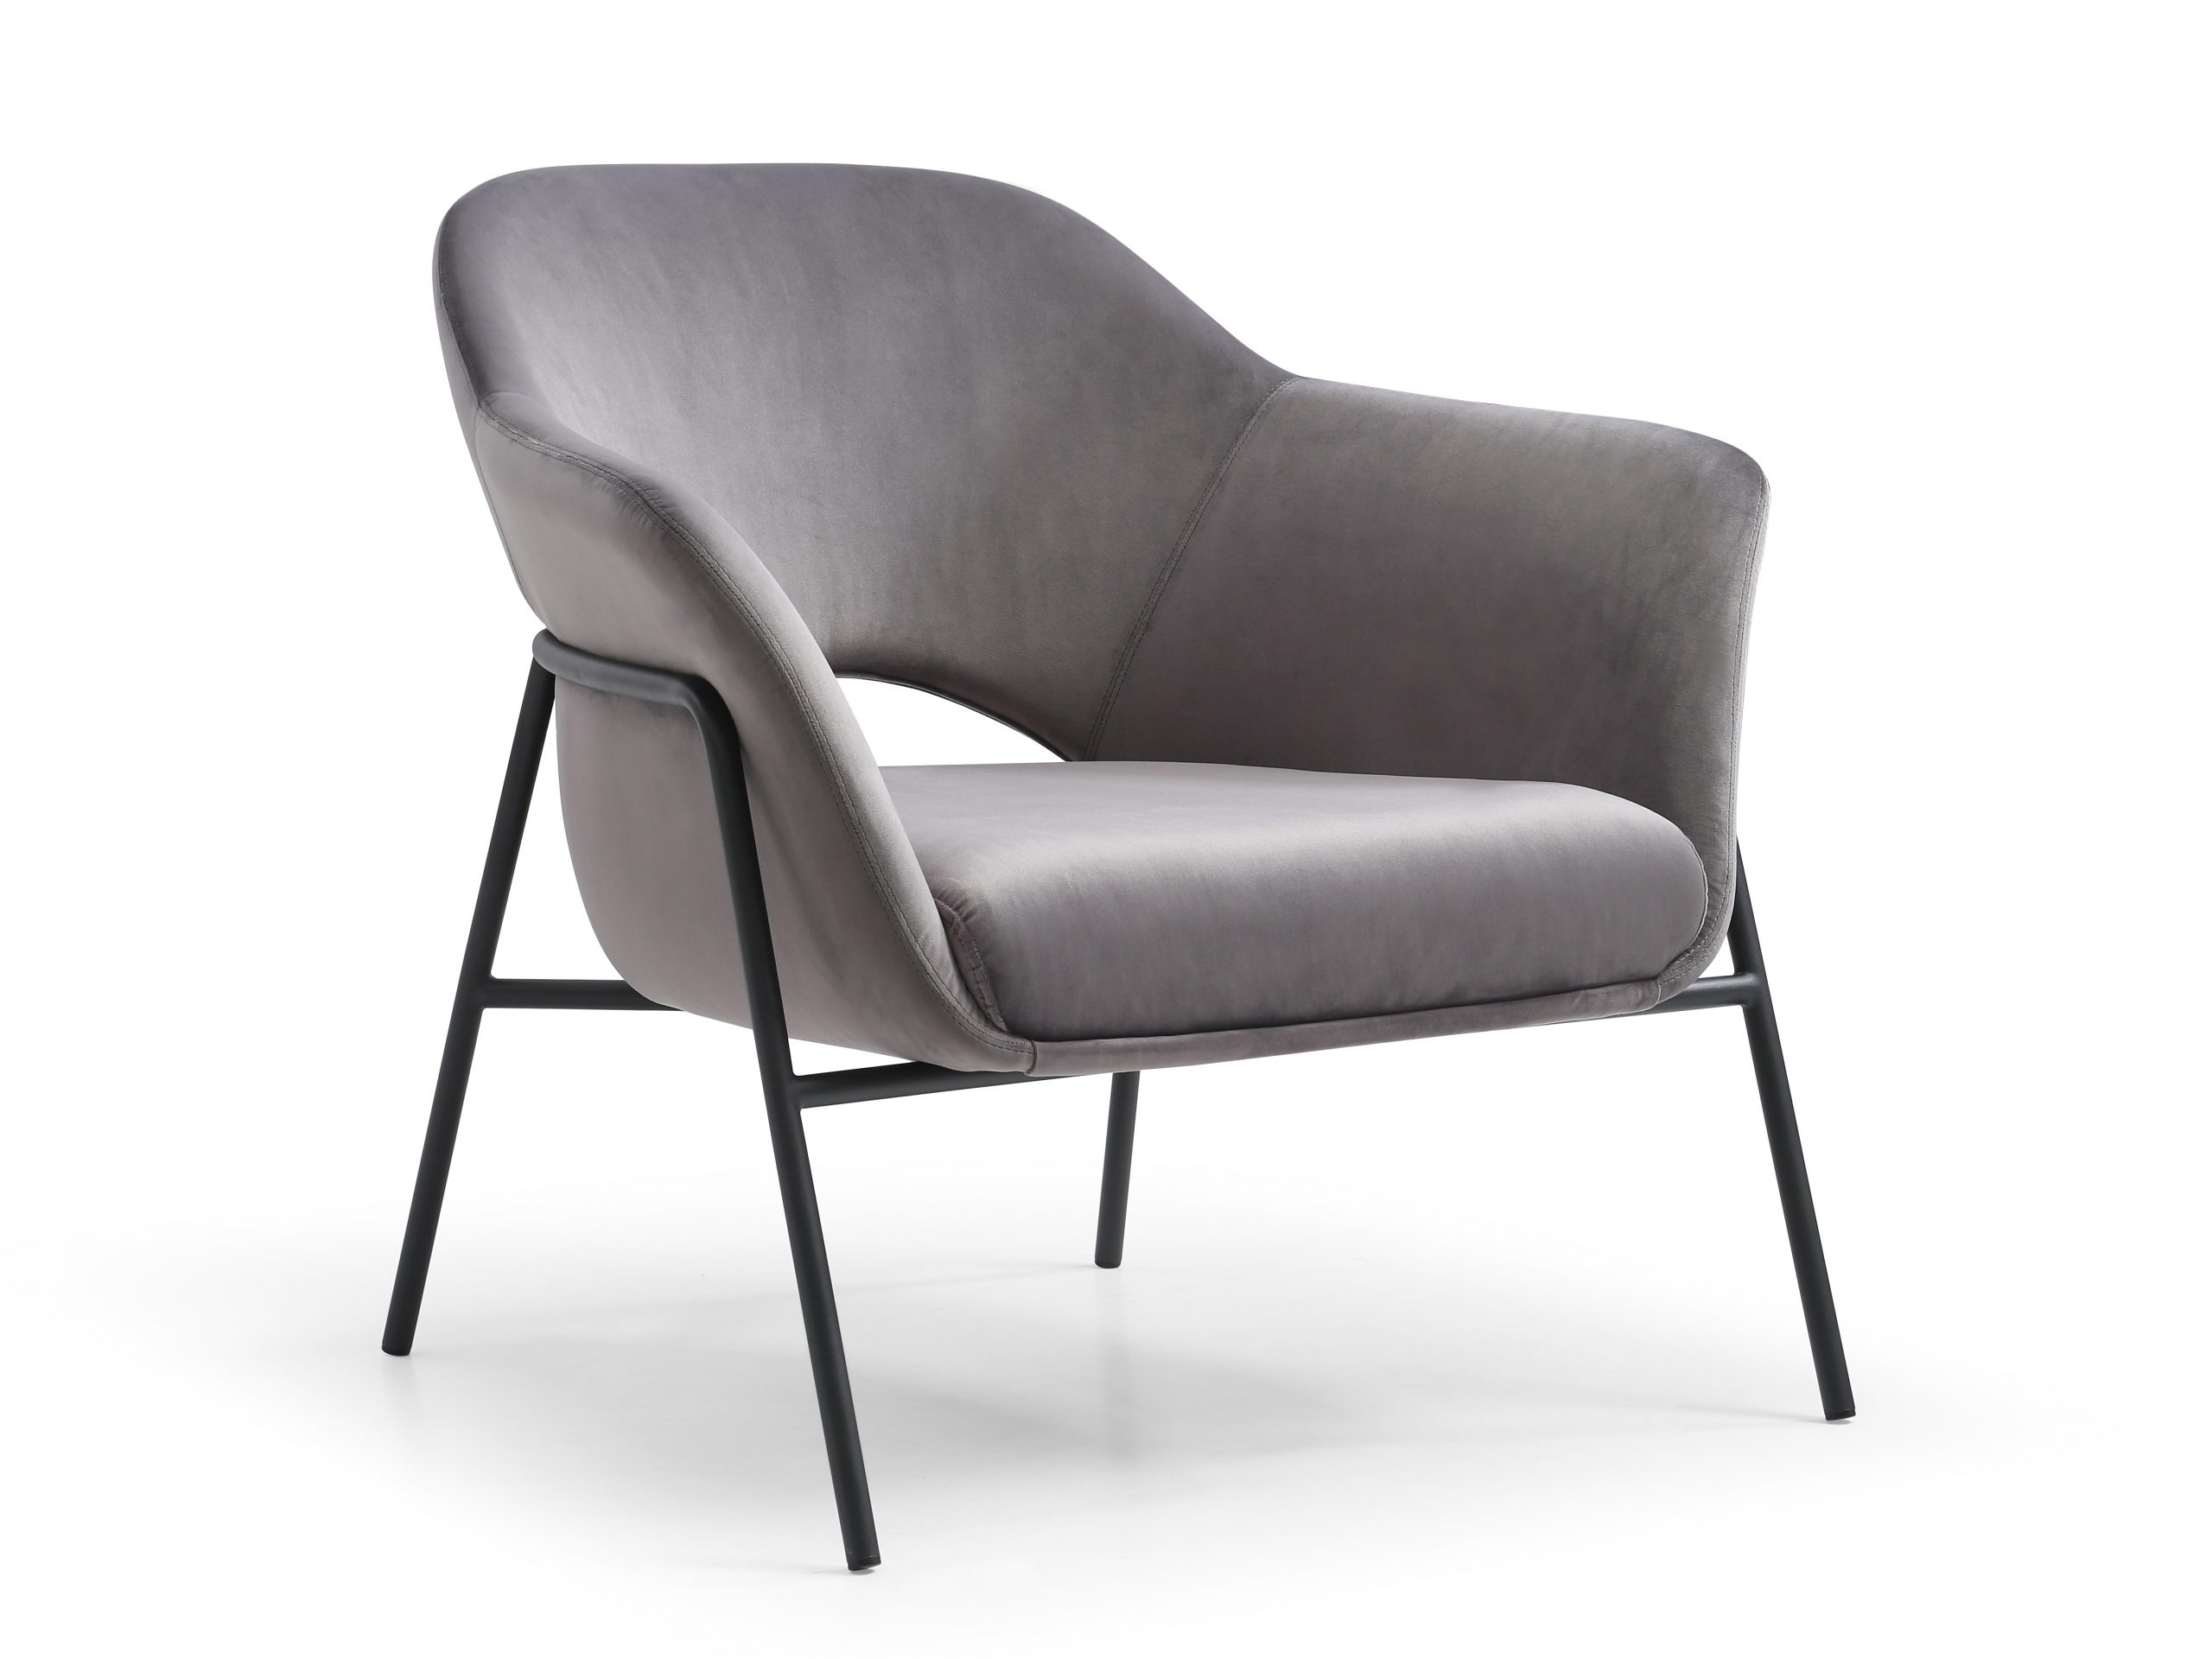 Karla Leisure Chair is luxurious accent chair available in blue or grey fabric. The chair is complimented with a sanded black coated steel frame.